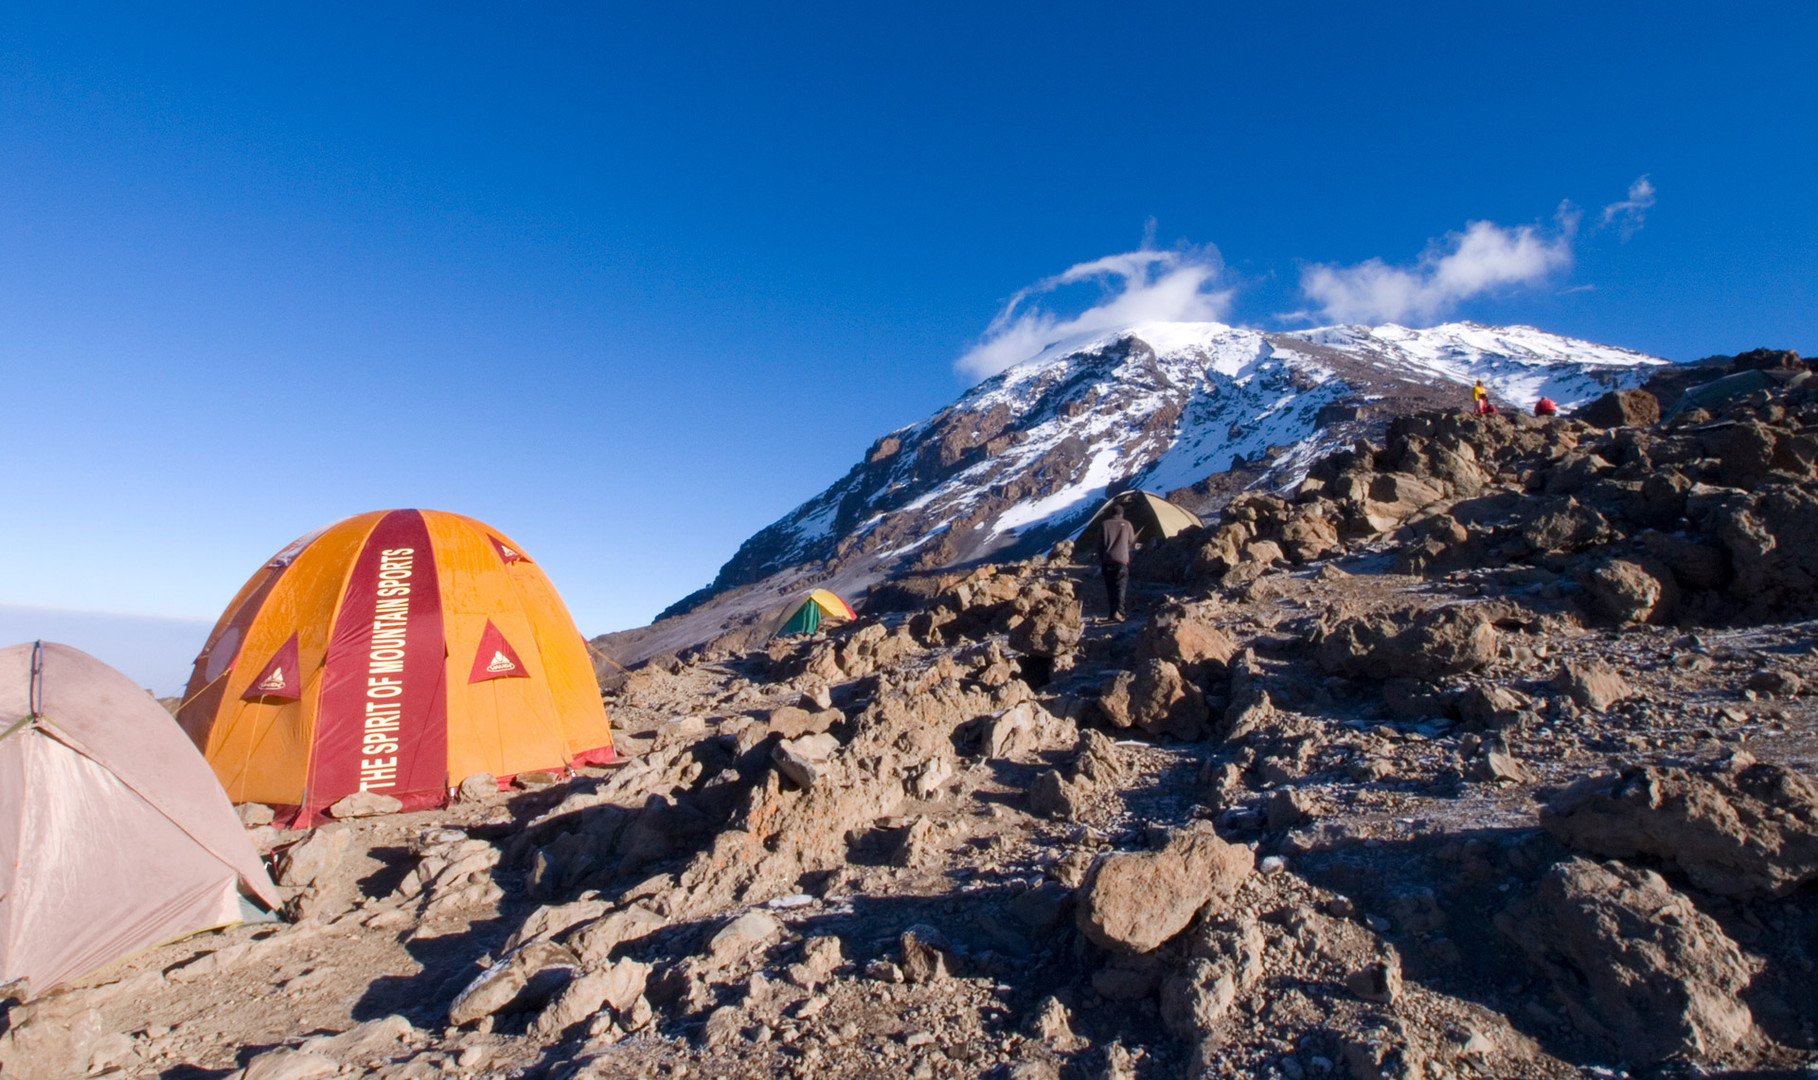 Base camp at Kilimanjaro, 2012